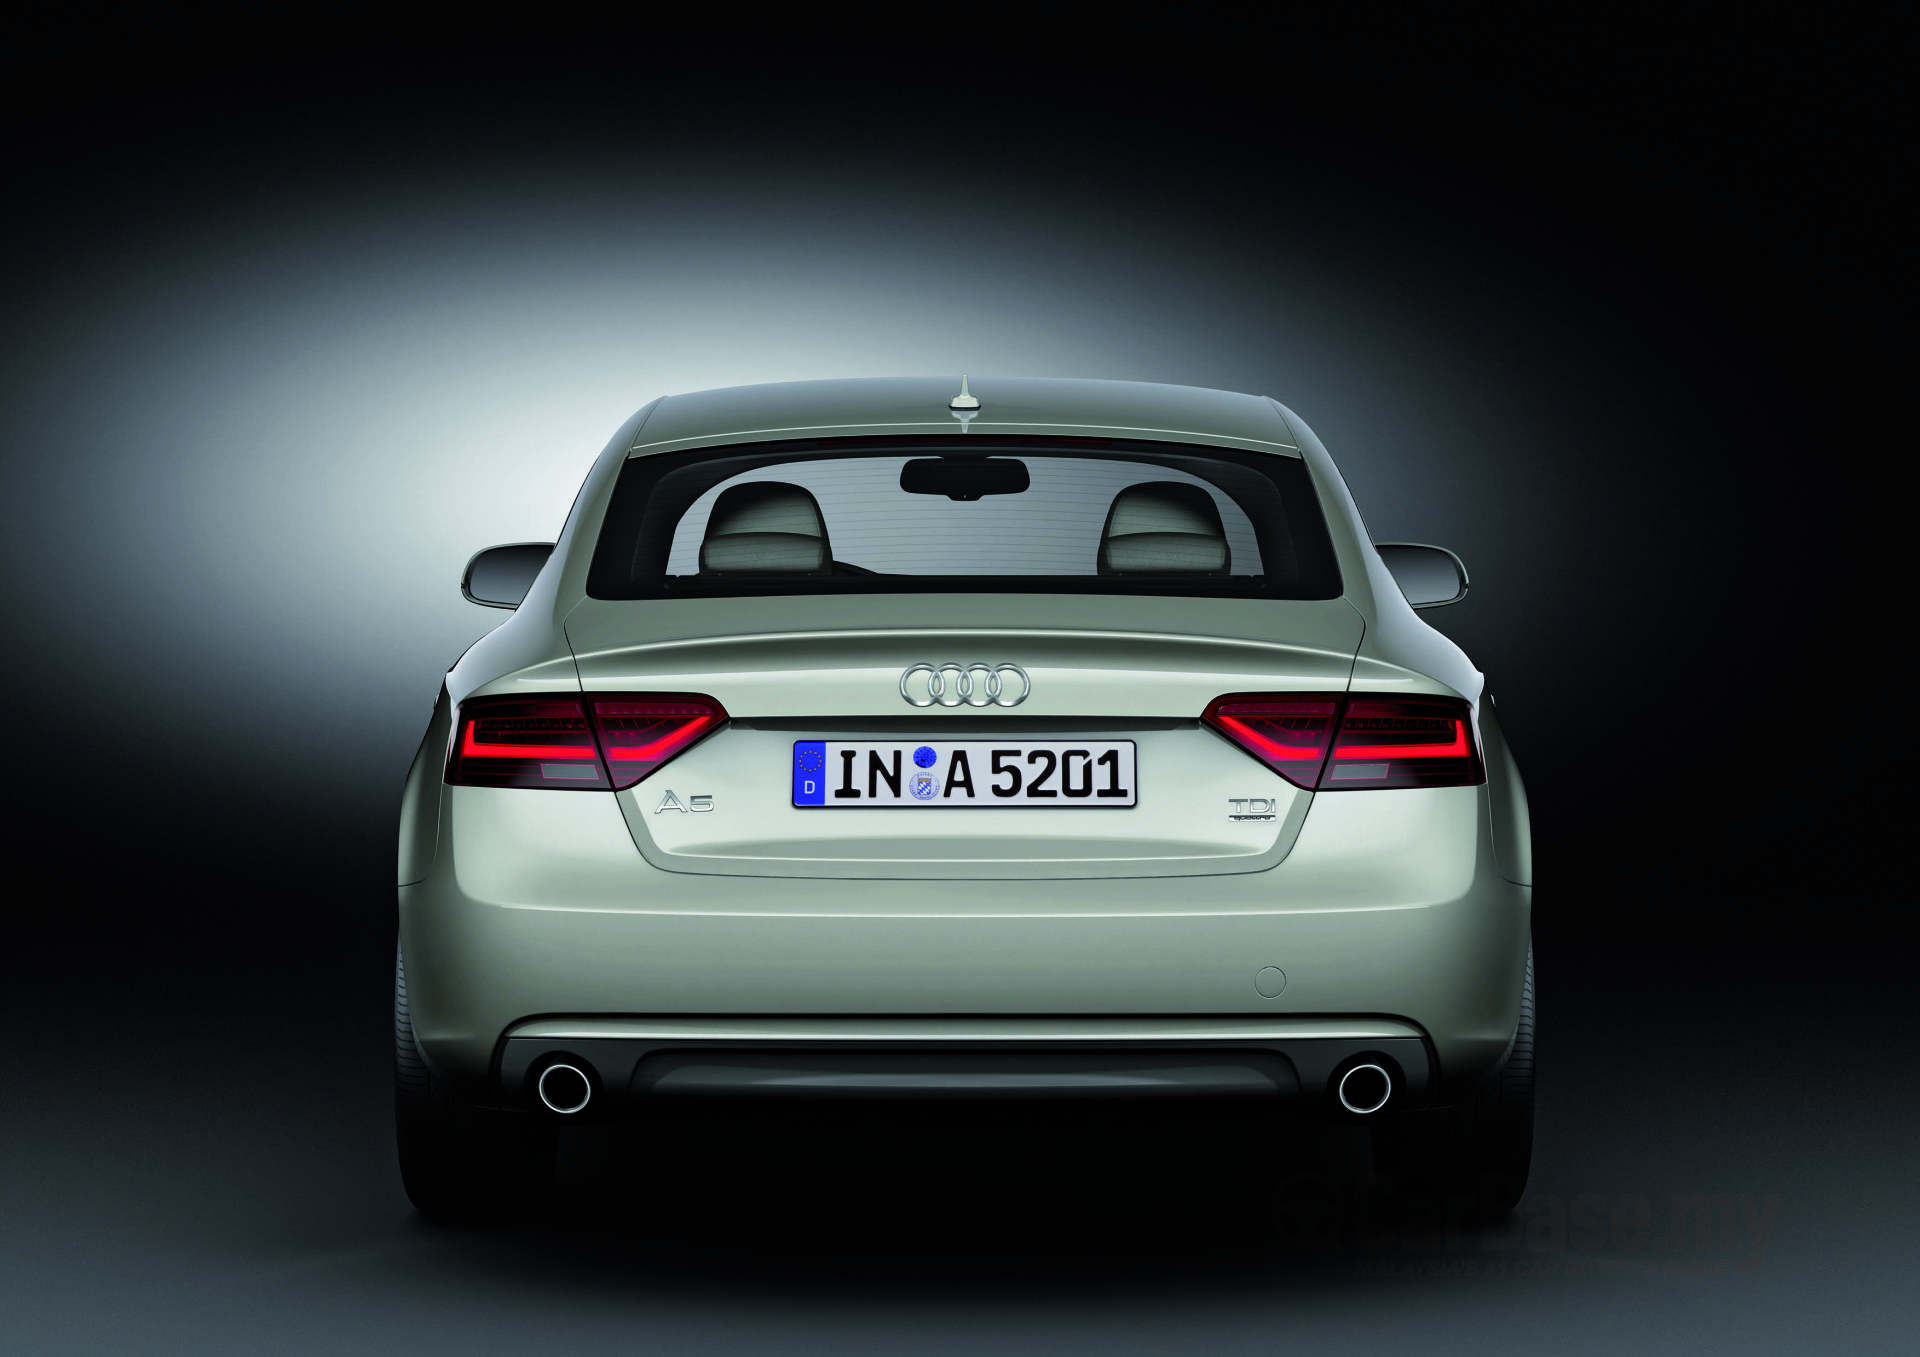 audi a5 sportback (8ta) 2013 pictures #7